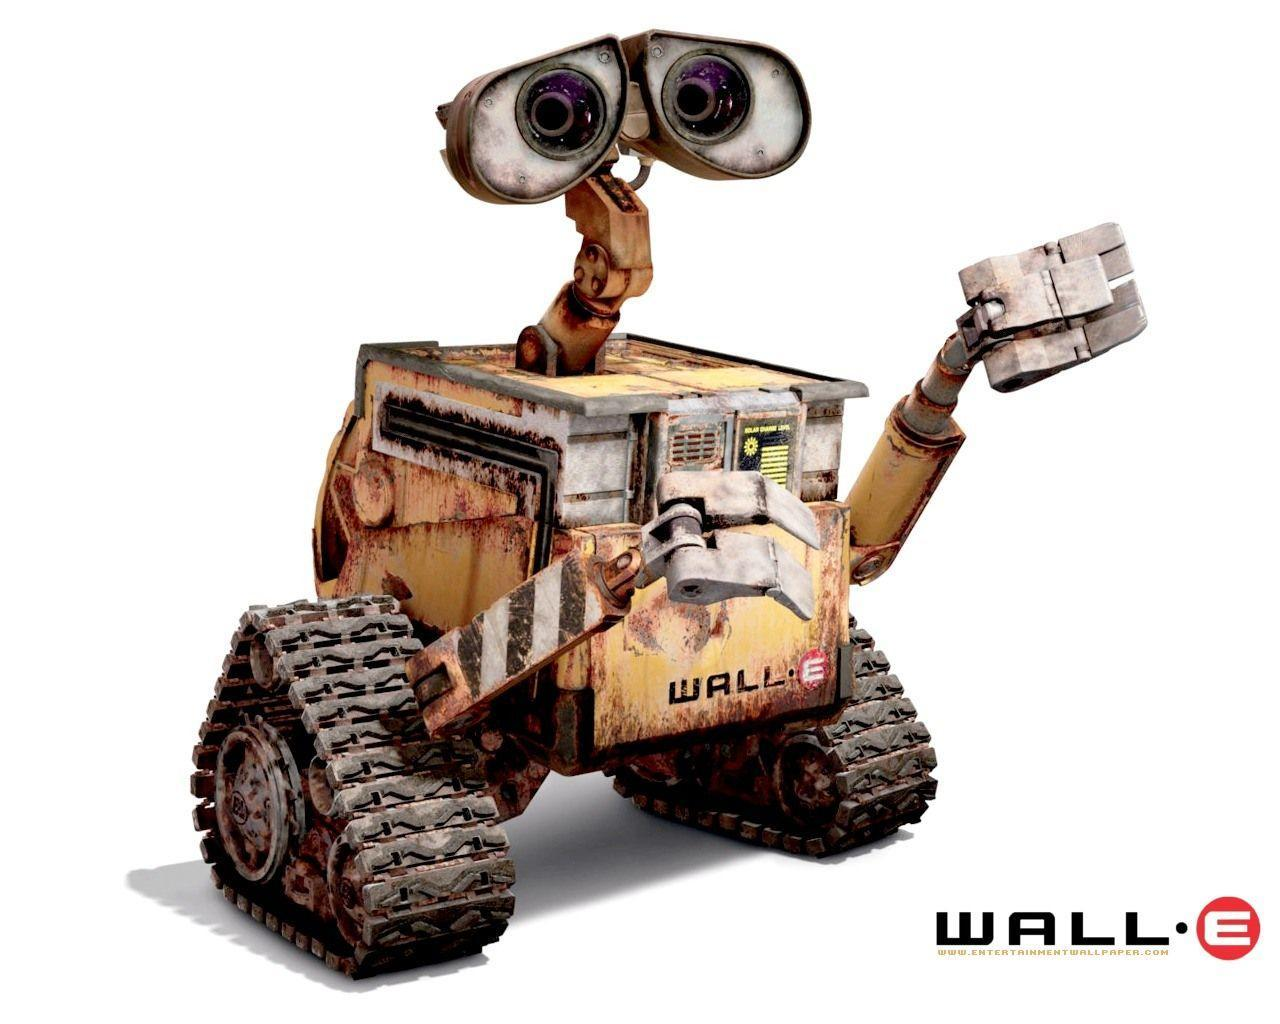 WALL.E wallaper WALL.E picture